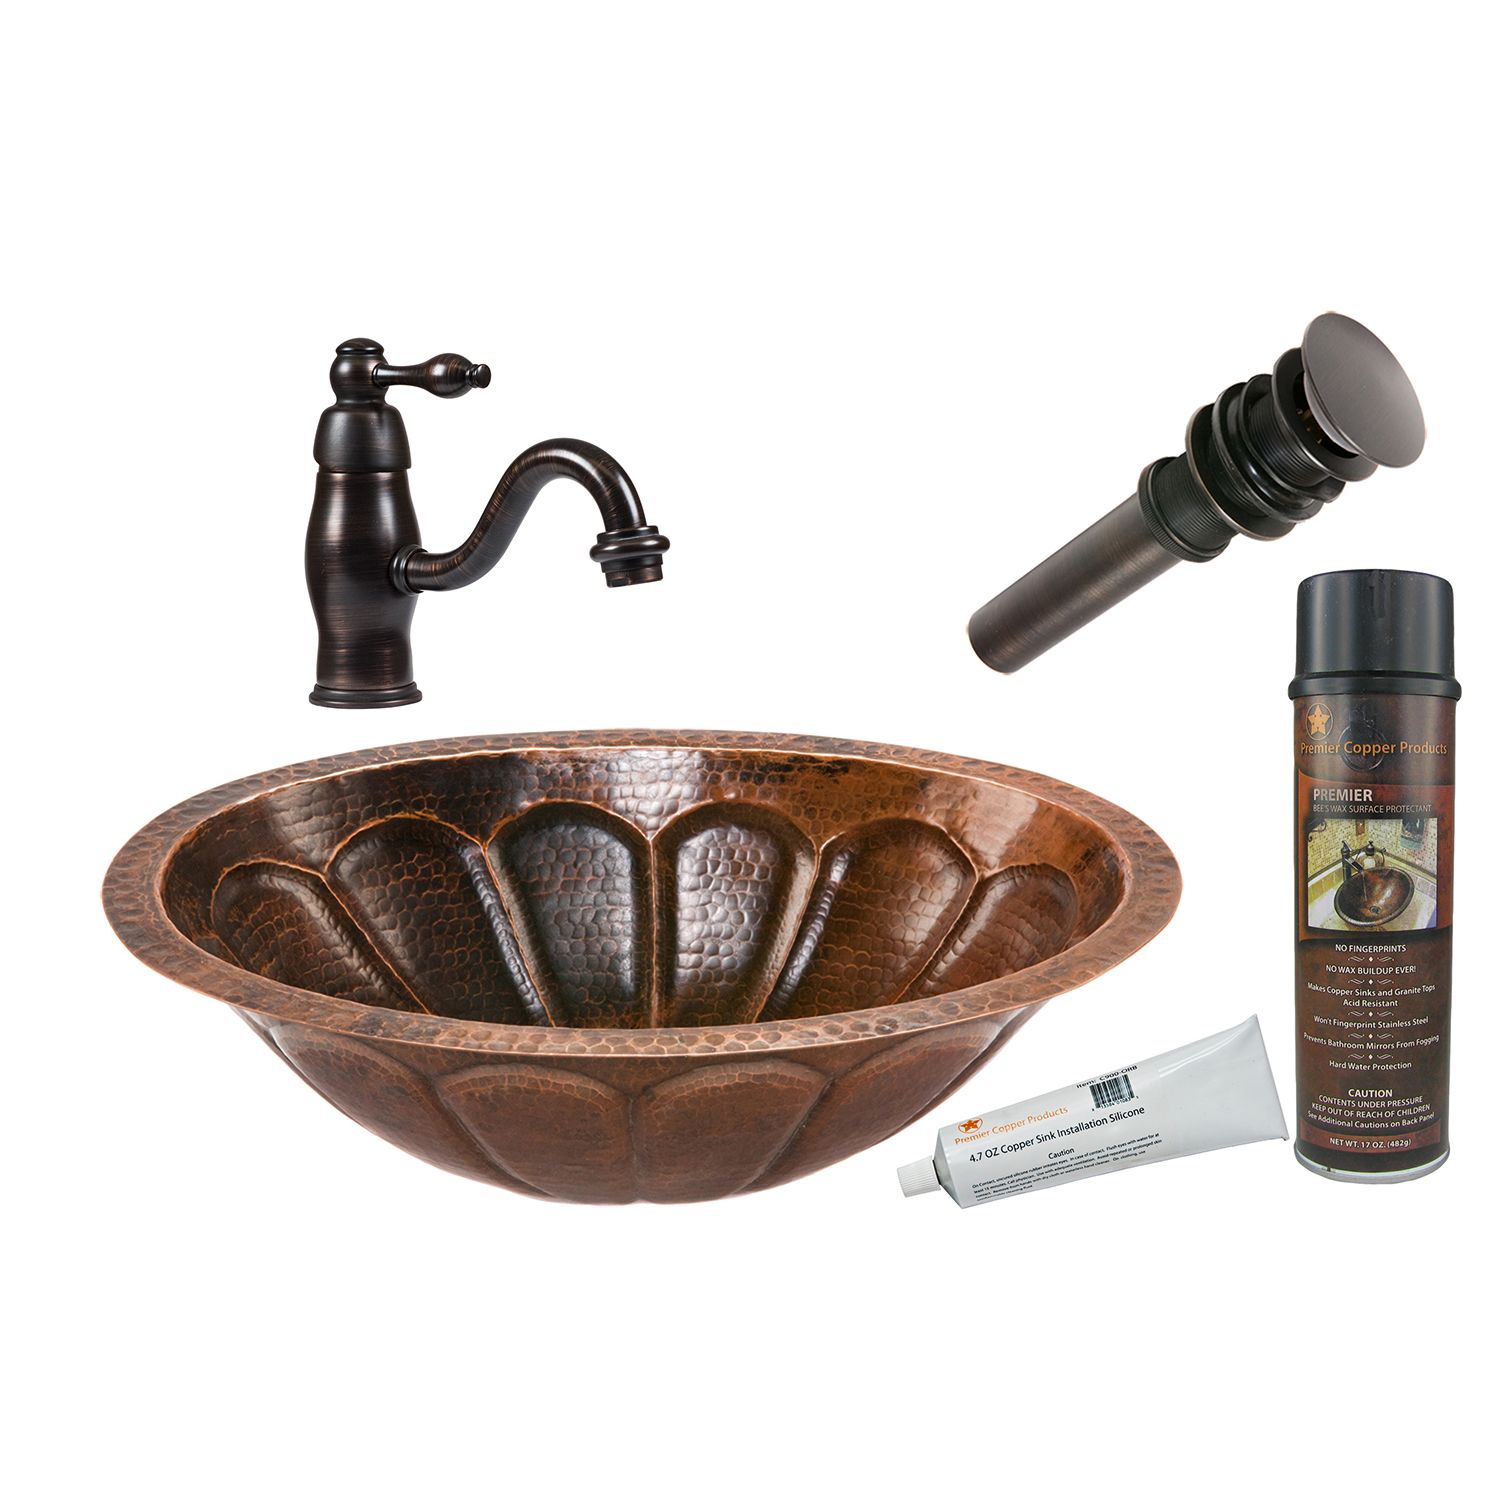 Oval Sunbrst Under Counter Hammered Copper Sink, Faucet and Accessories Package, Oil Rubbed Bronze